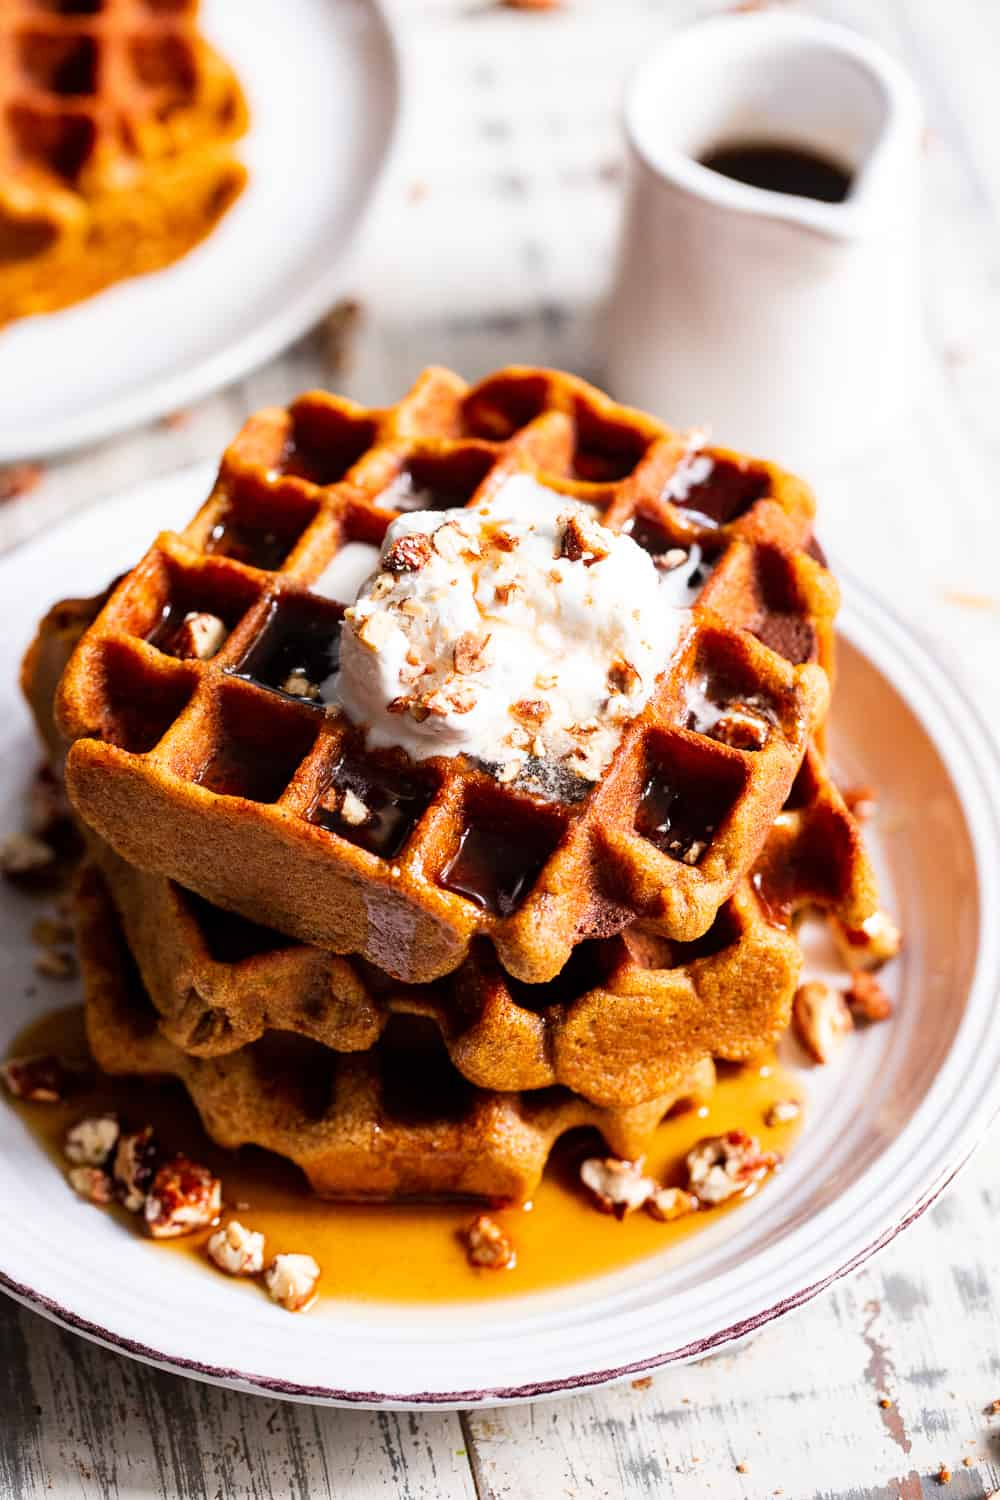 These Paleo Pumpkin Waffles are crisp on the outside, soft inside and filled with warm fall spices. They're just sweet enough to enjoy alone or you can top with all your favorites like maple syrup, coconut whipped cream and chopped pecans. They're kid approved and freeze well so you can enjoy one on the go! Gluten free, dairy free. #paleo #pumpkin #cleaneating #waffles #glutenfree